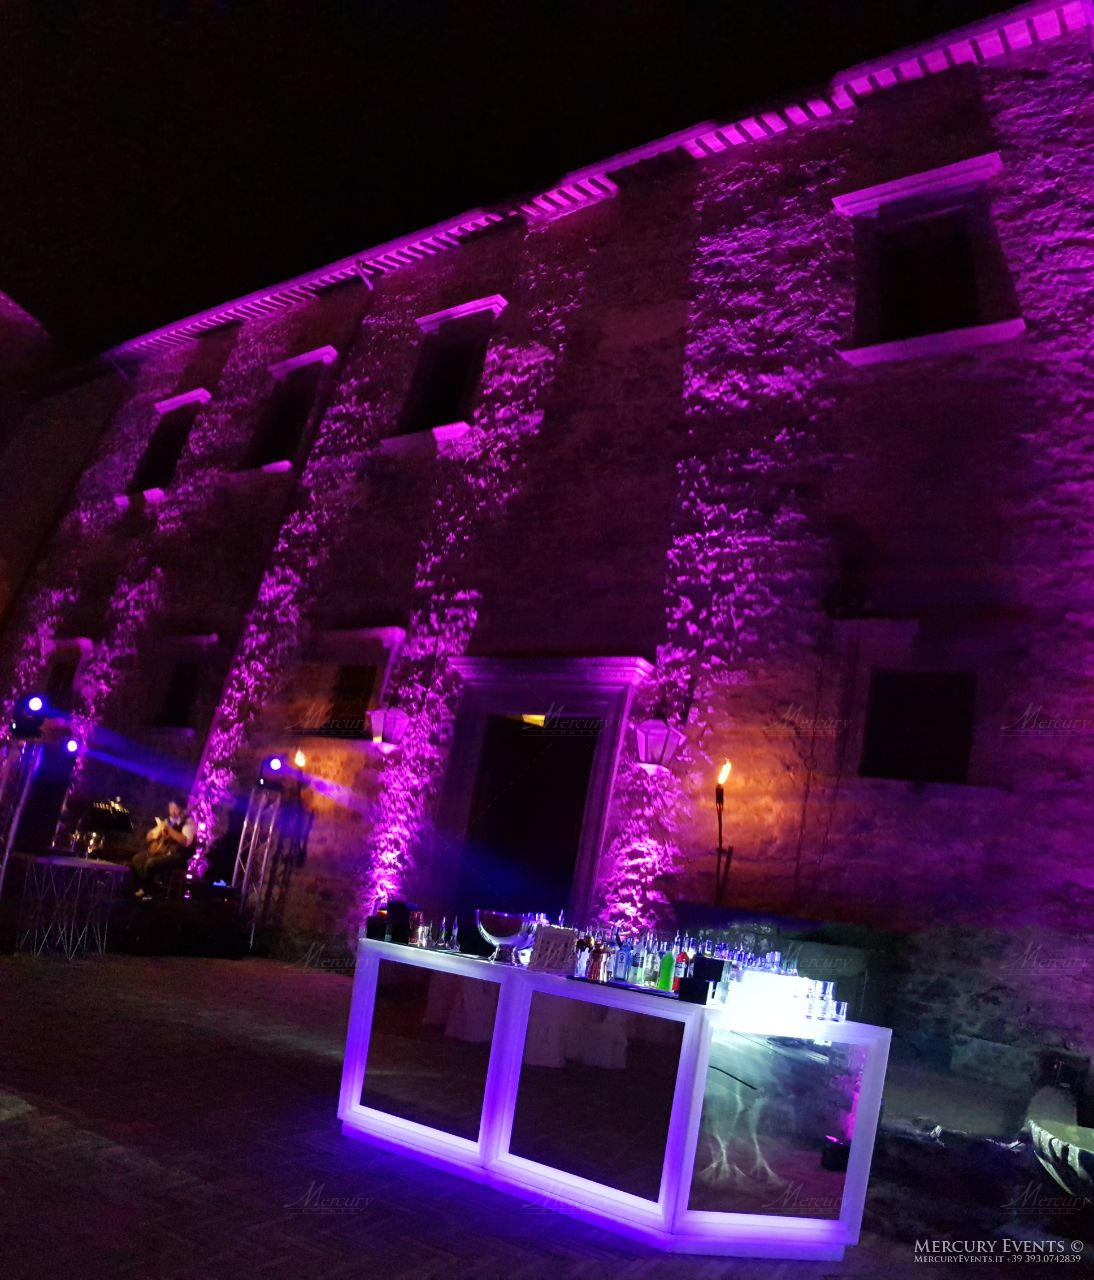 Wedding - Castello Odelschalchi di Bracciano - Mercury Events 5